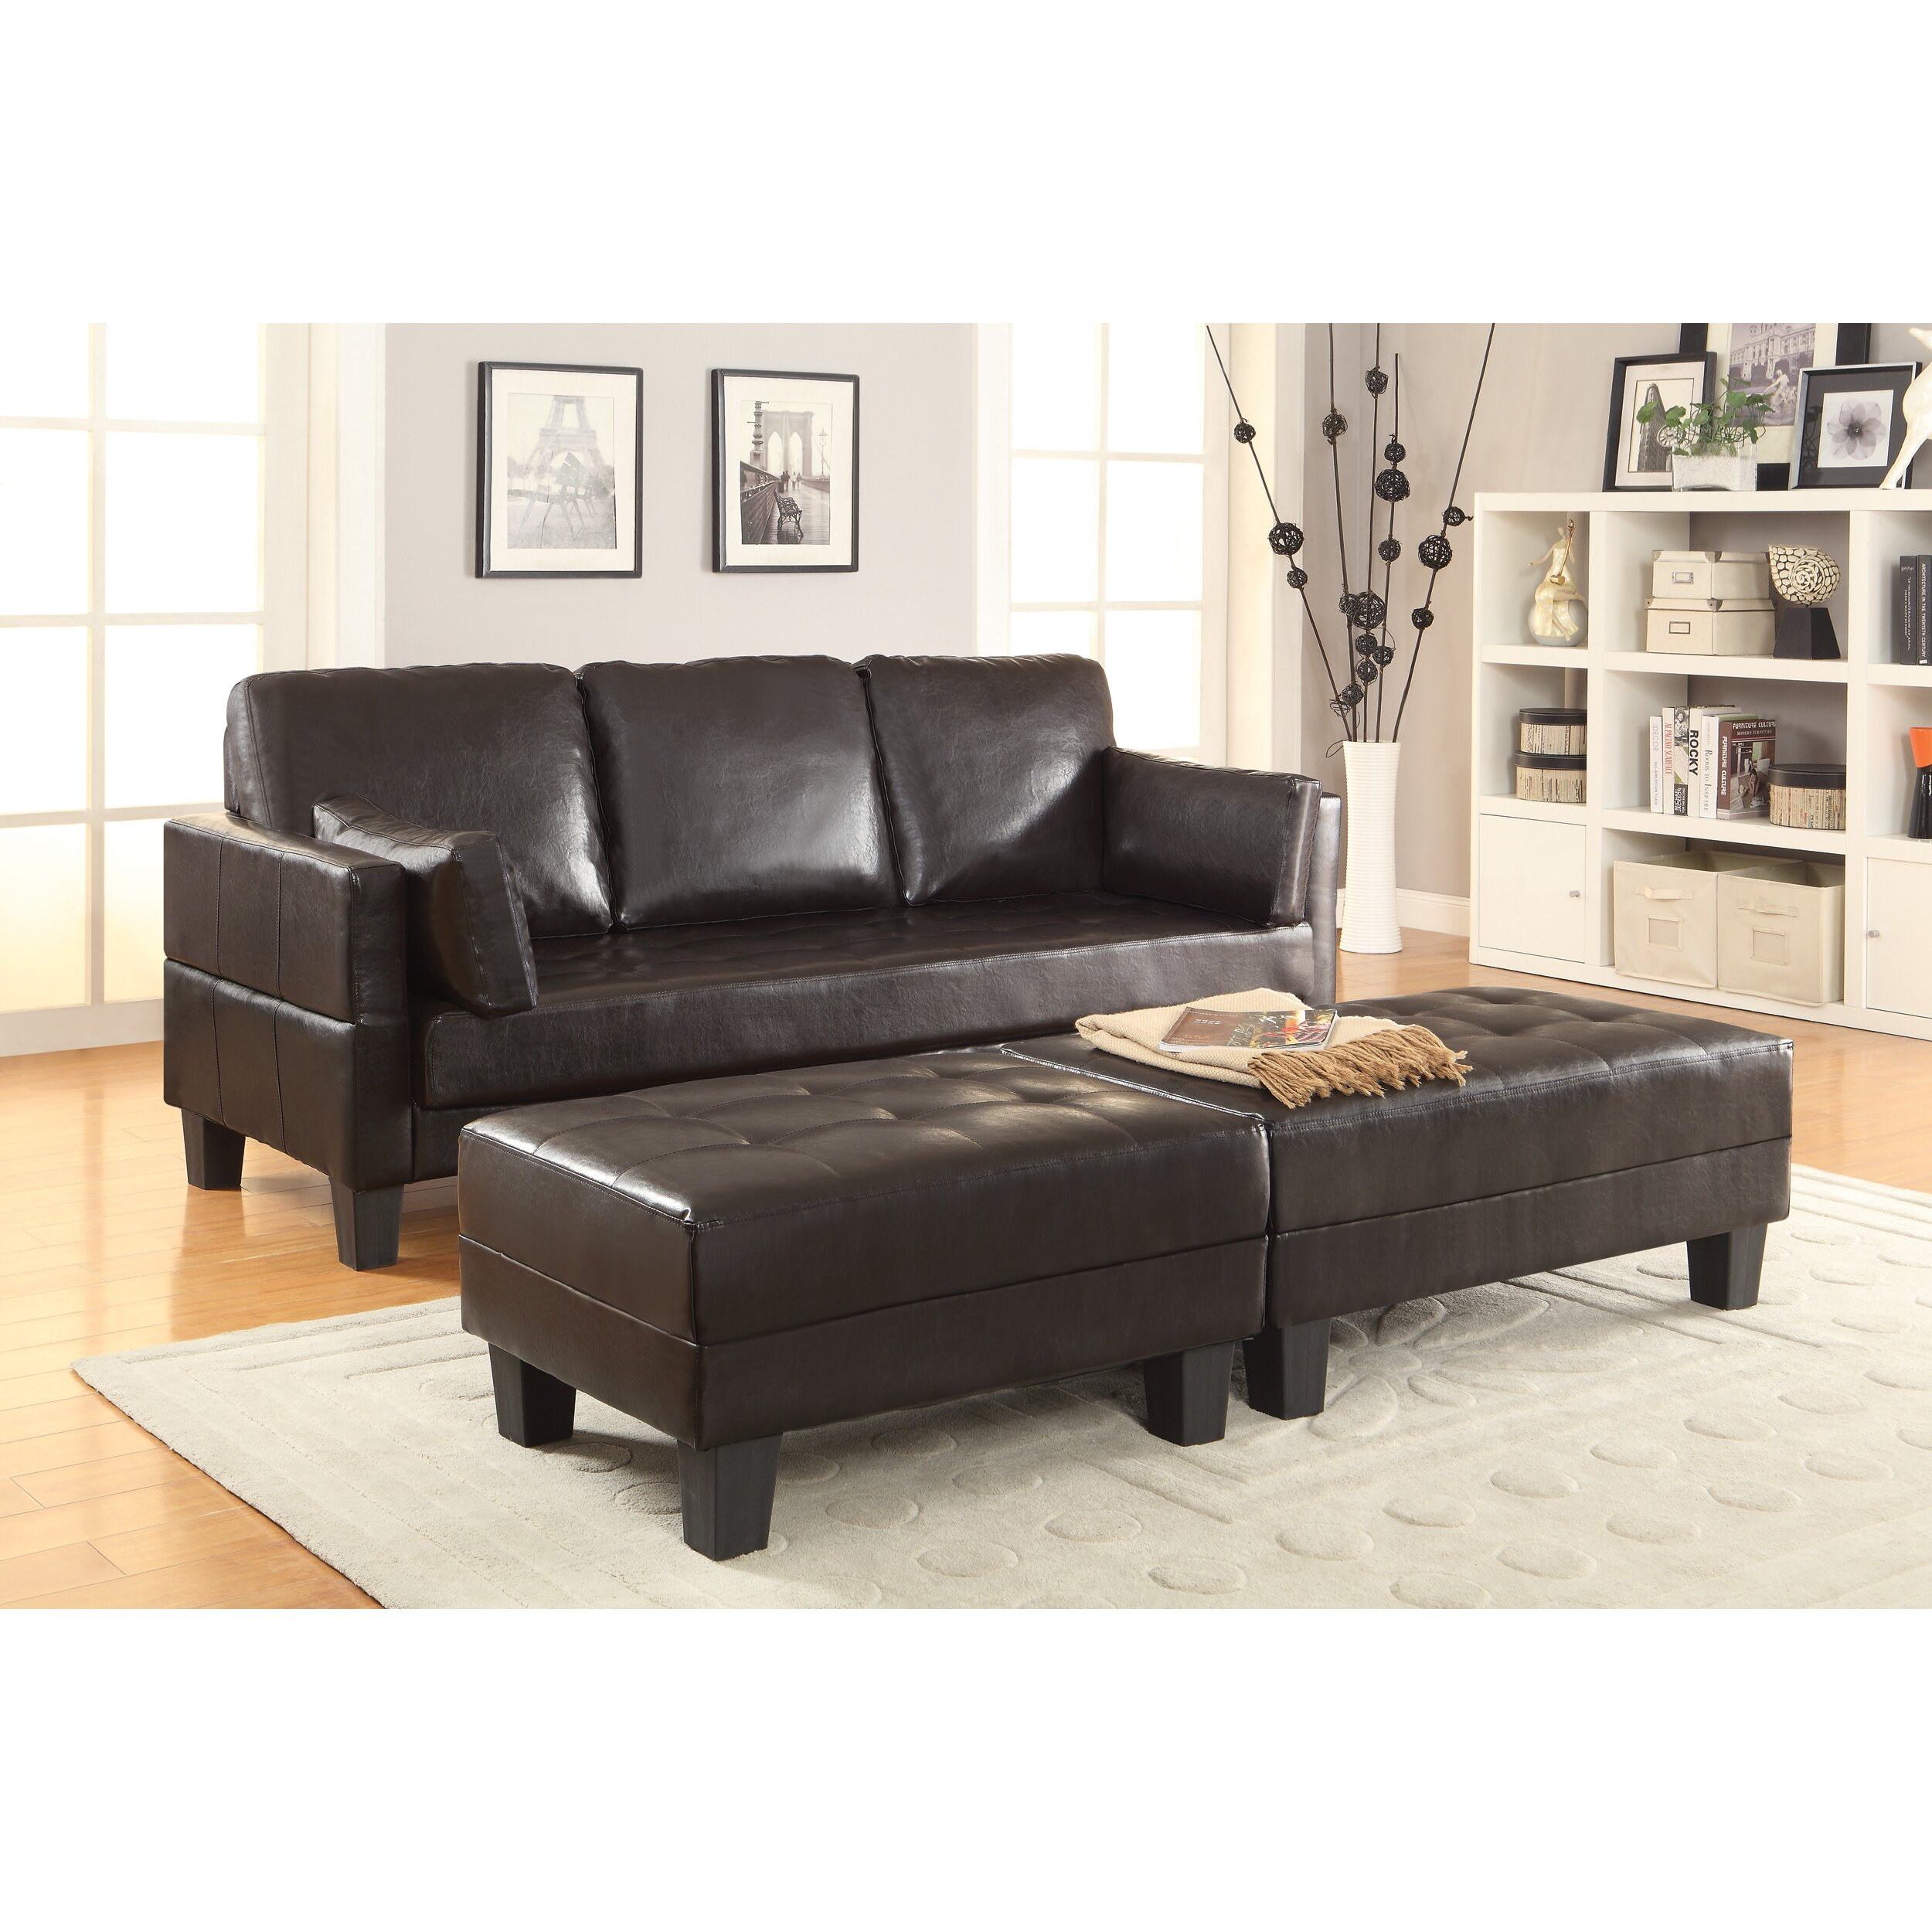 Wildon Home Sleeper Sofa 2 Ottomans Reviews Wayfair